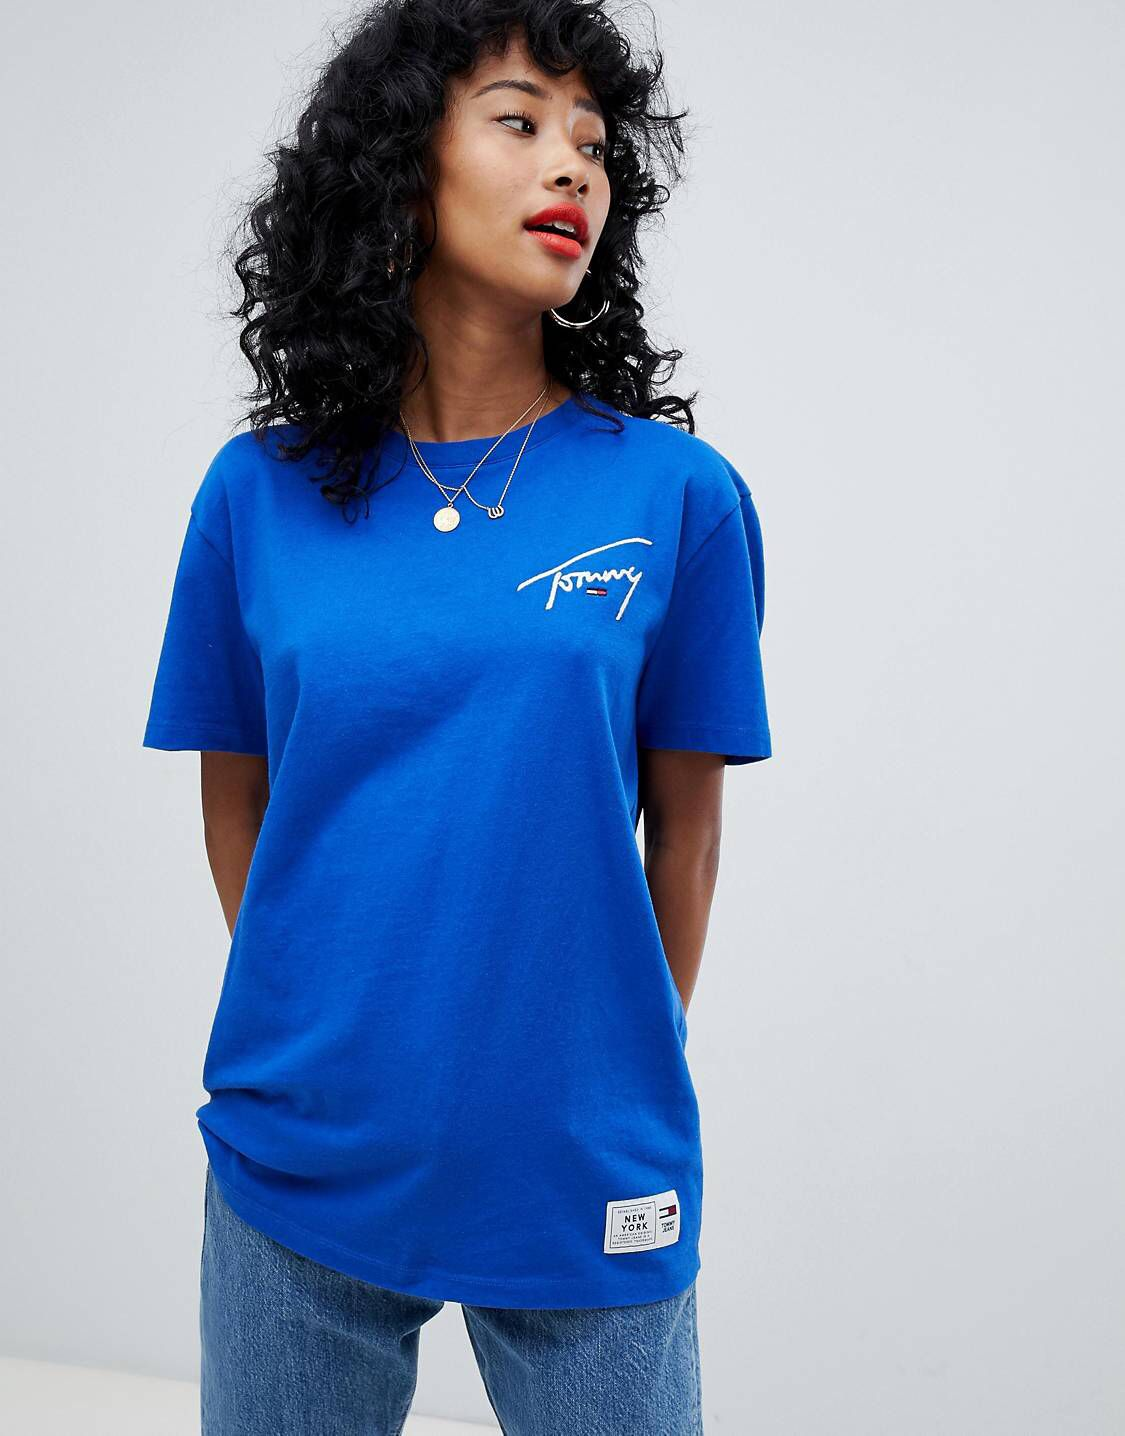 a69049fd Just when I thought I didn't need something new from ASOS, I kinda